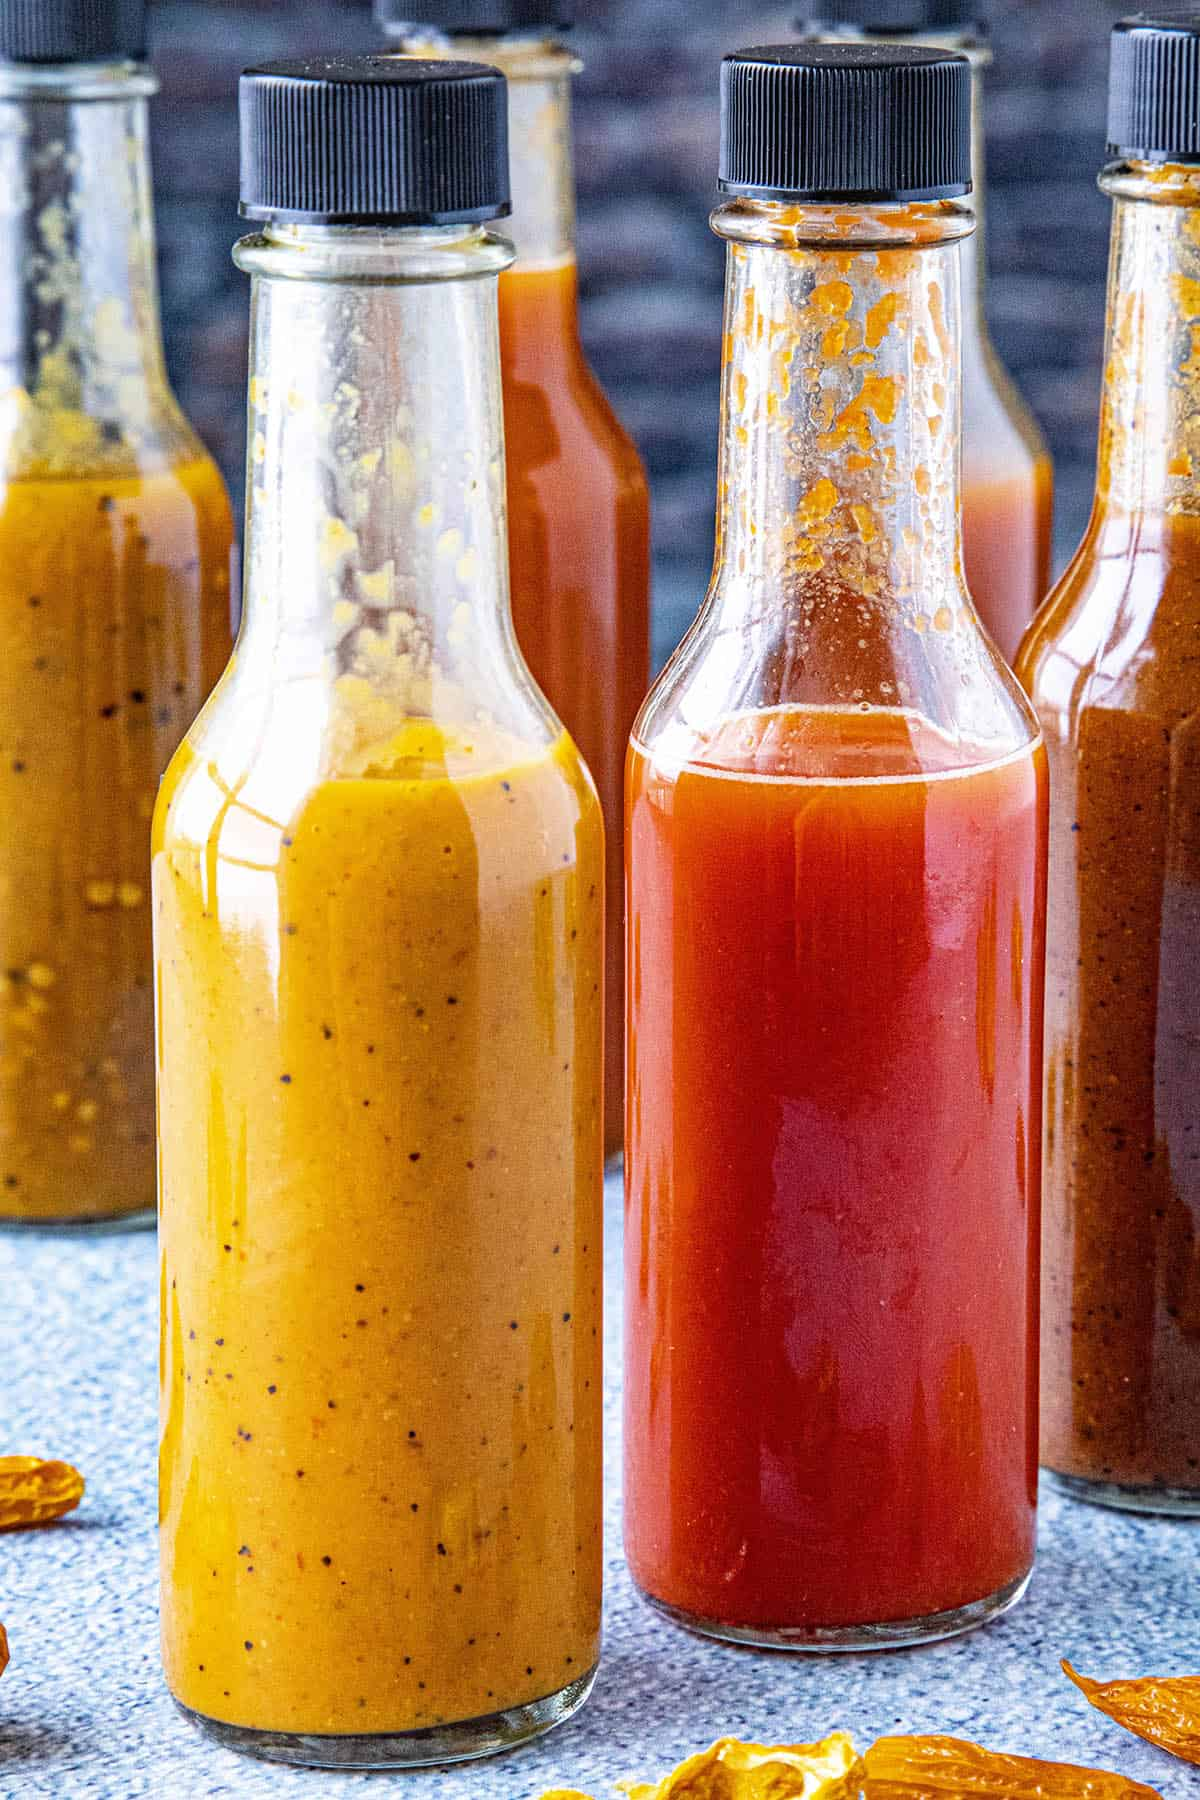 Several bottles of hot sauce made from chili powders